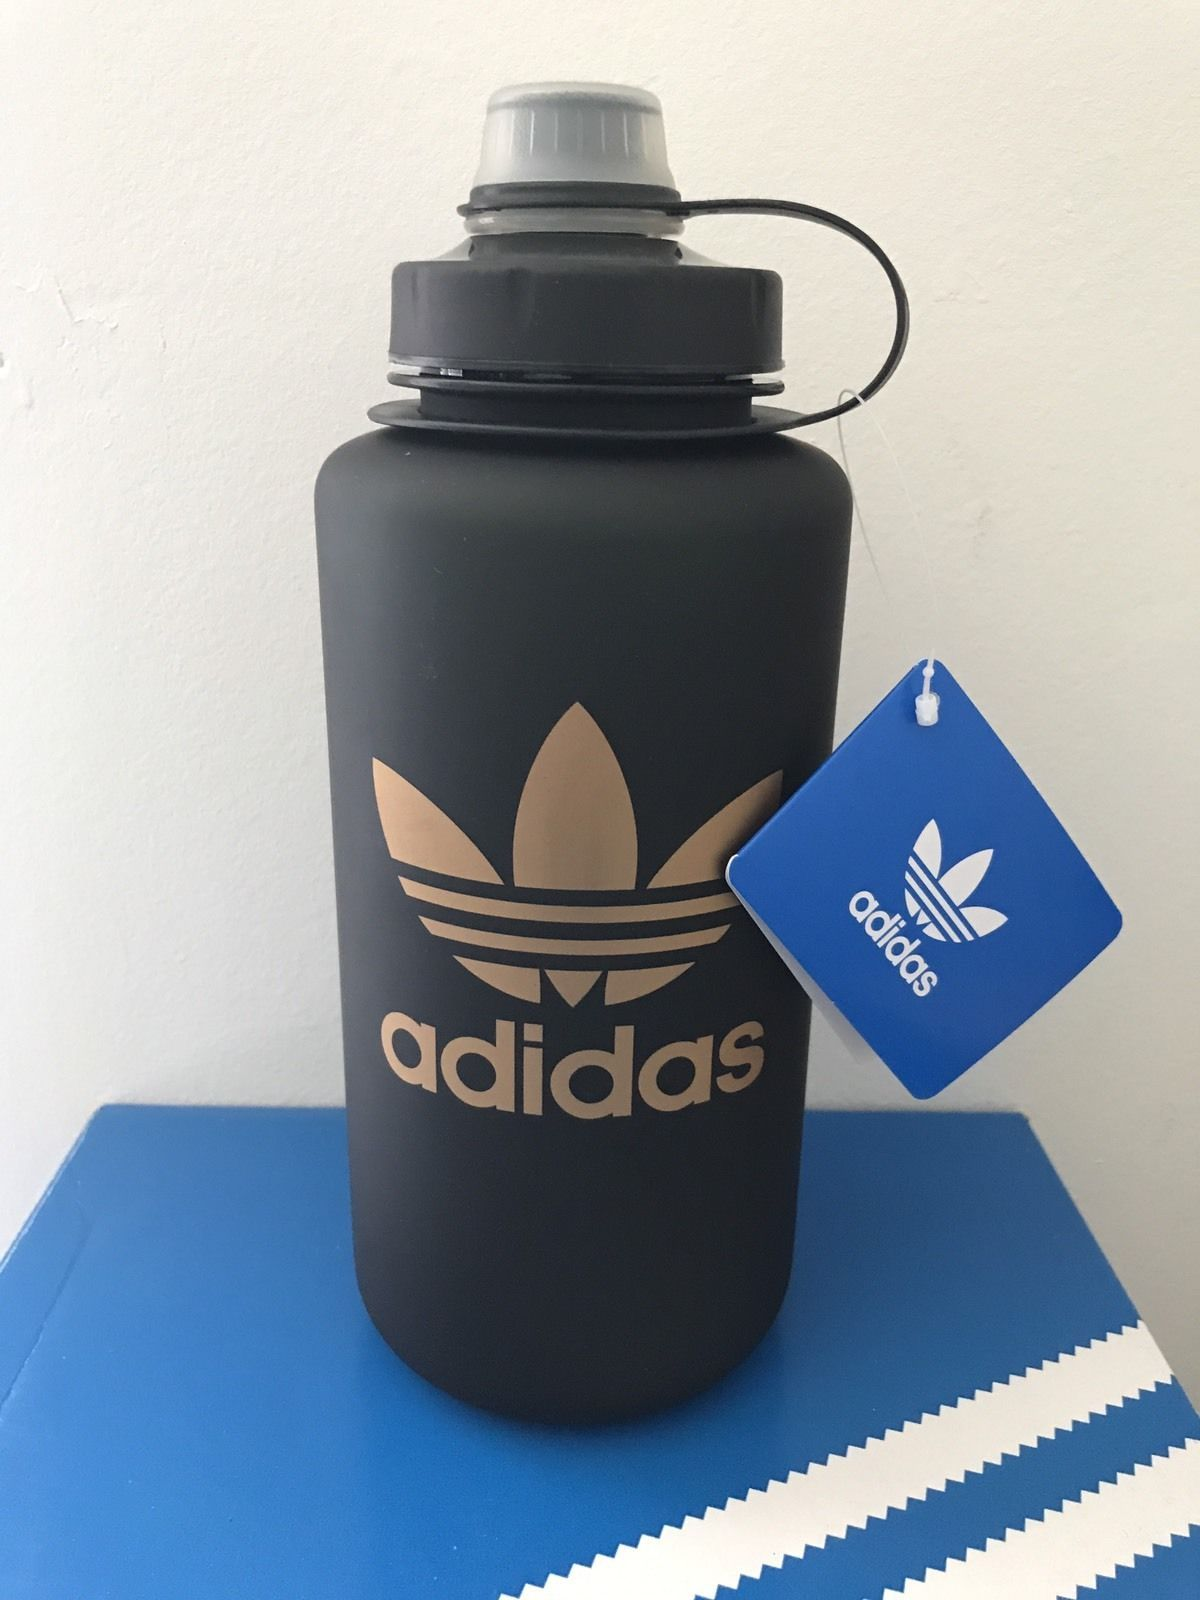 Dureza No se mueve Resistente  Adidas Original 32 oz/1L Sip Water Bottle Tumbler BPA Free Drink Container  NEW | Sip water bottle, Water bottle, Bottle